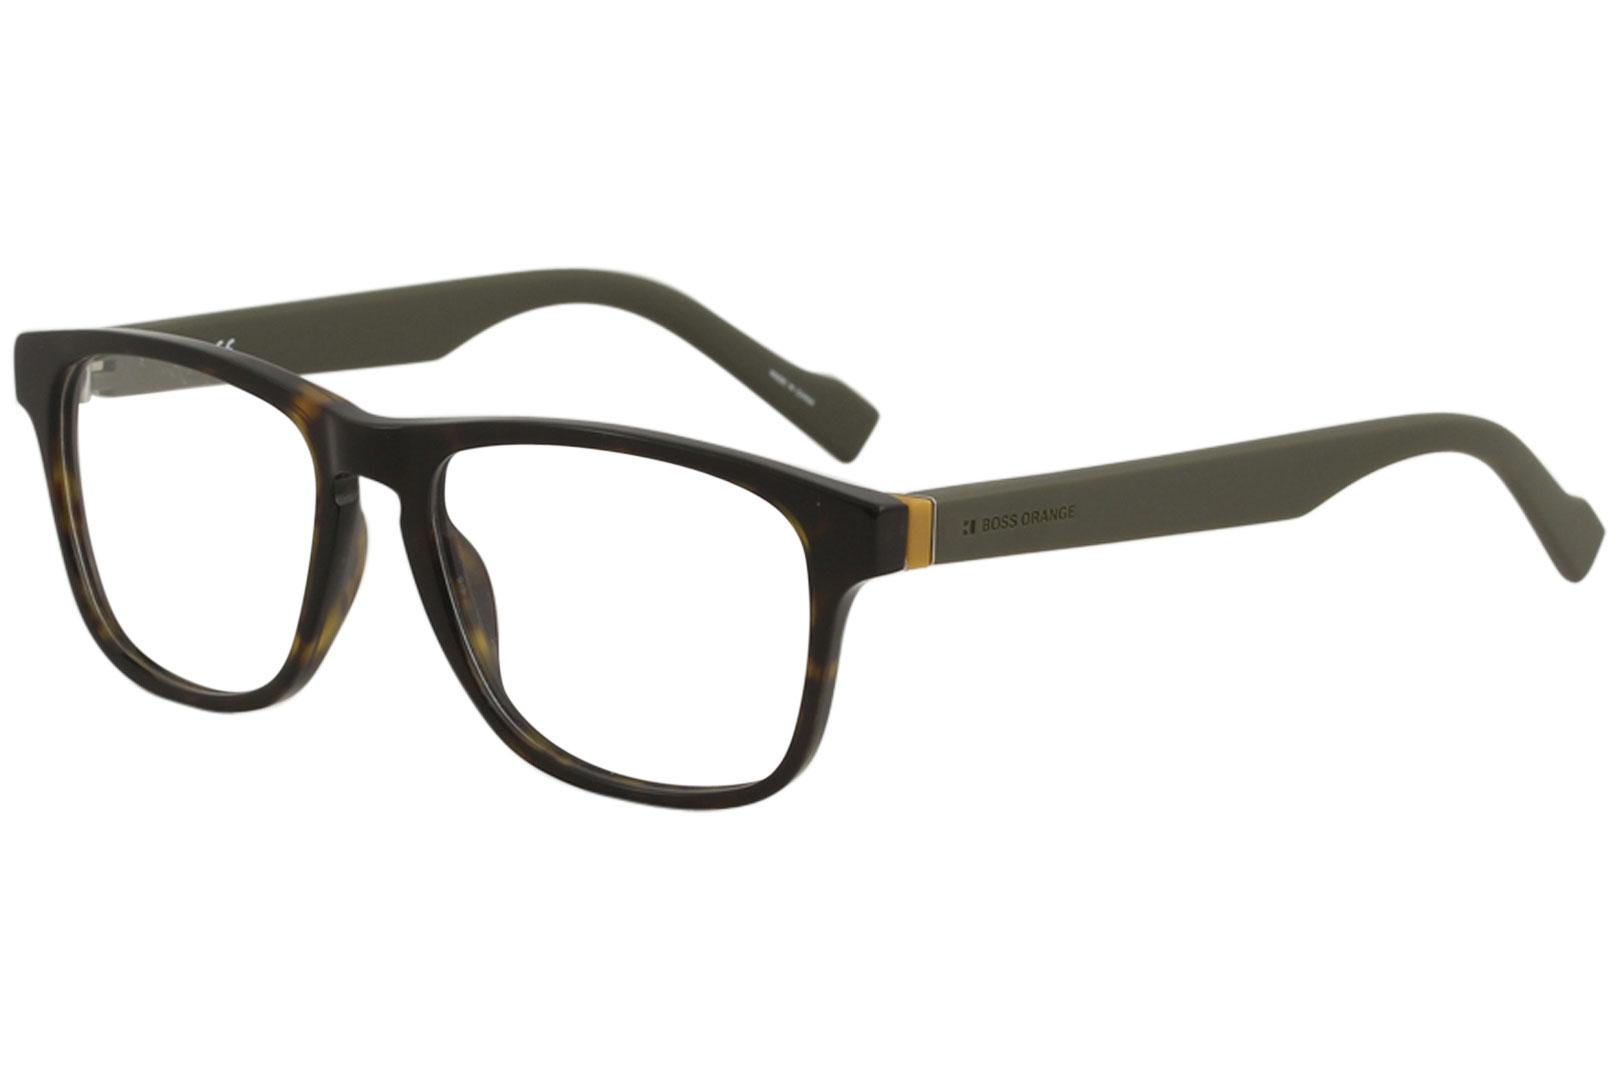 6d74ce8ce65 Hugo Boss Men s Eyeglasses BO0180 BO 0180 Full Rim Optical Frame